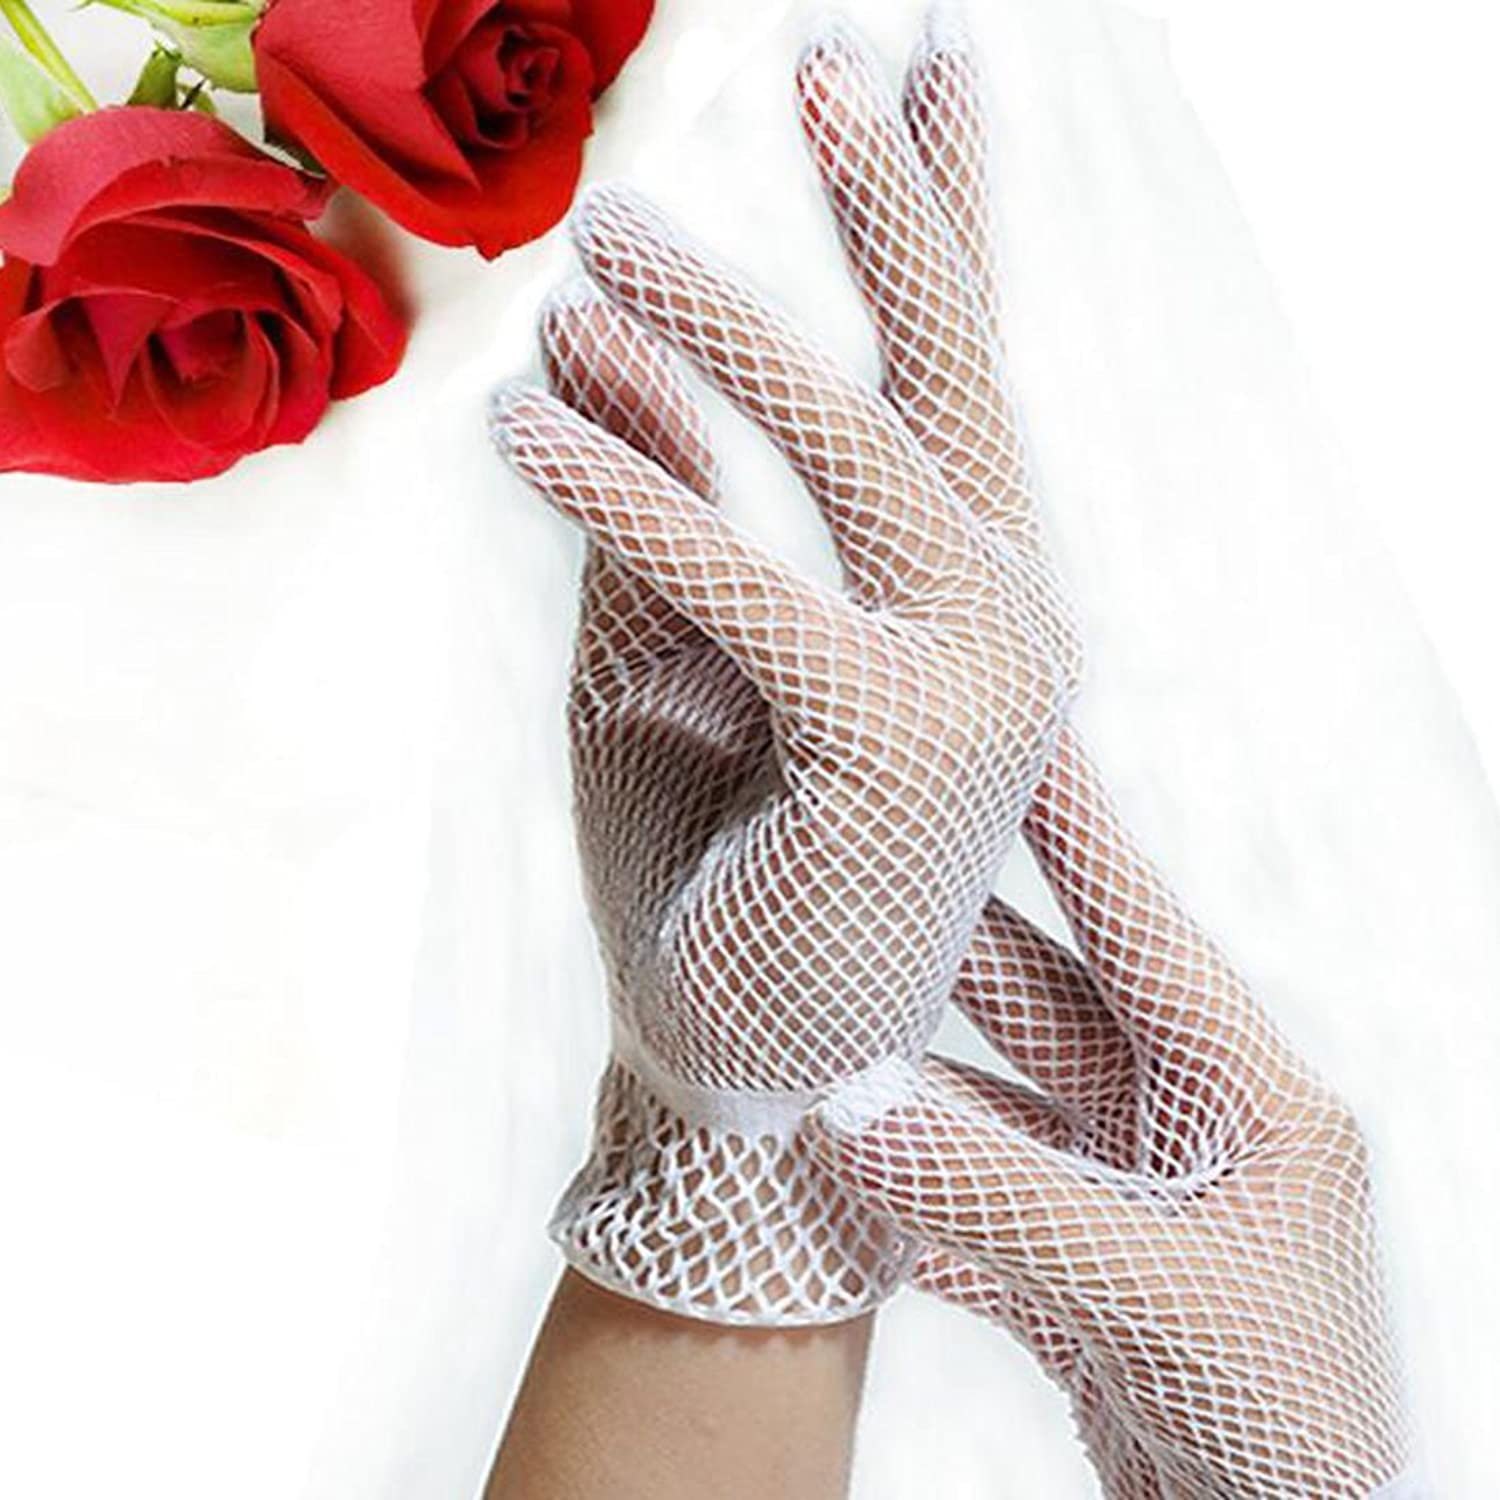 Vintage Style Gloves 1 Pair Fishnet Mesh Gloves Fashion Women Gloves Summer UV Protection Lace Glove White $2.11 AT vintagedancer.com